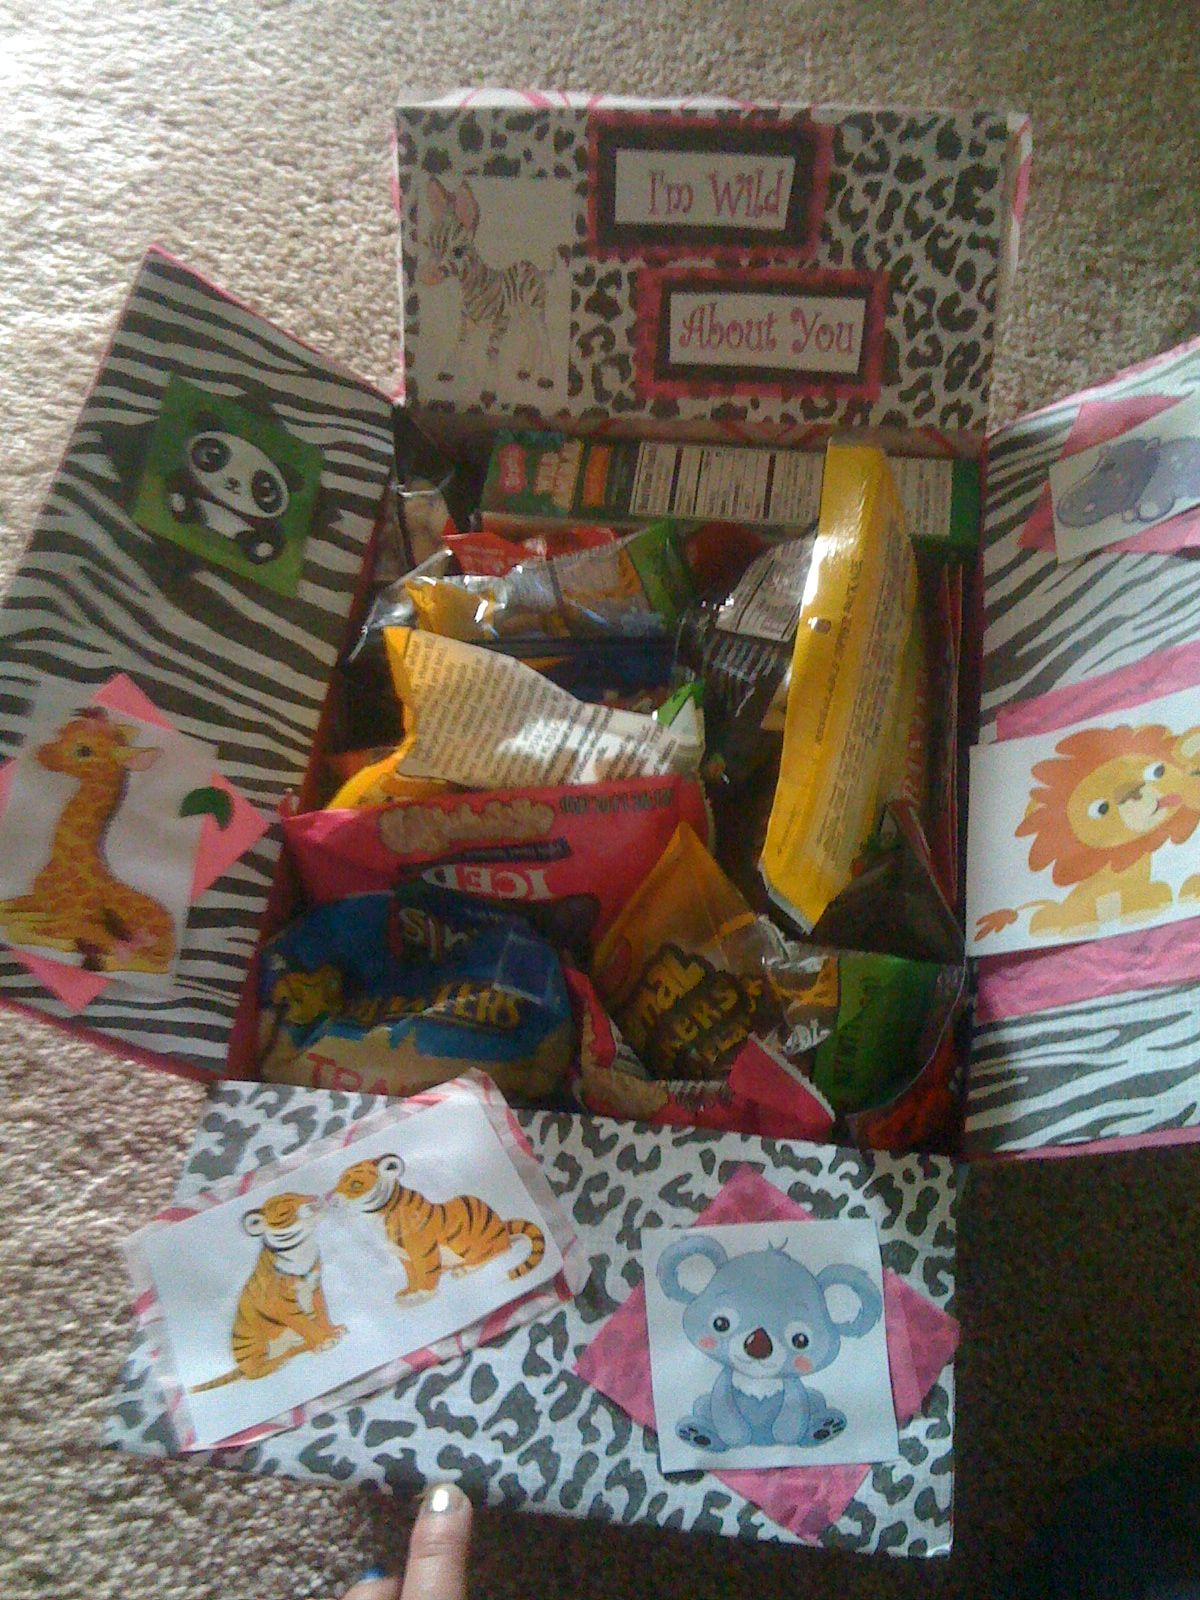 Wild about you box. (Animal Crackers, iced animal cookies, wild animal fruit snacks, peanuts-from the elephants, banana chips-from the monkeys, tuna-from the seals, etc..)